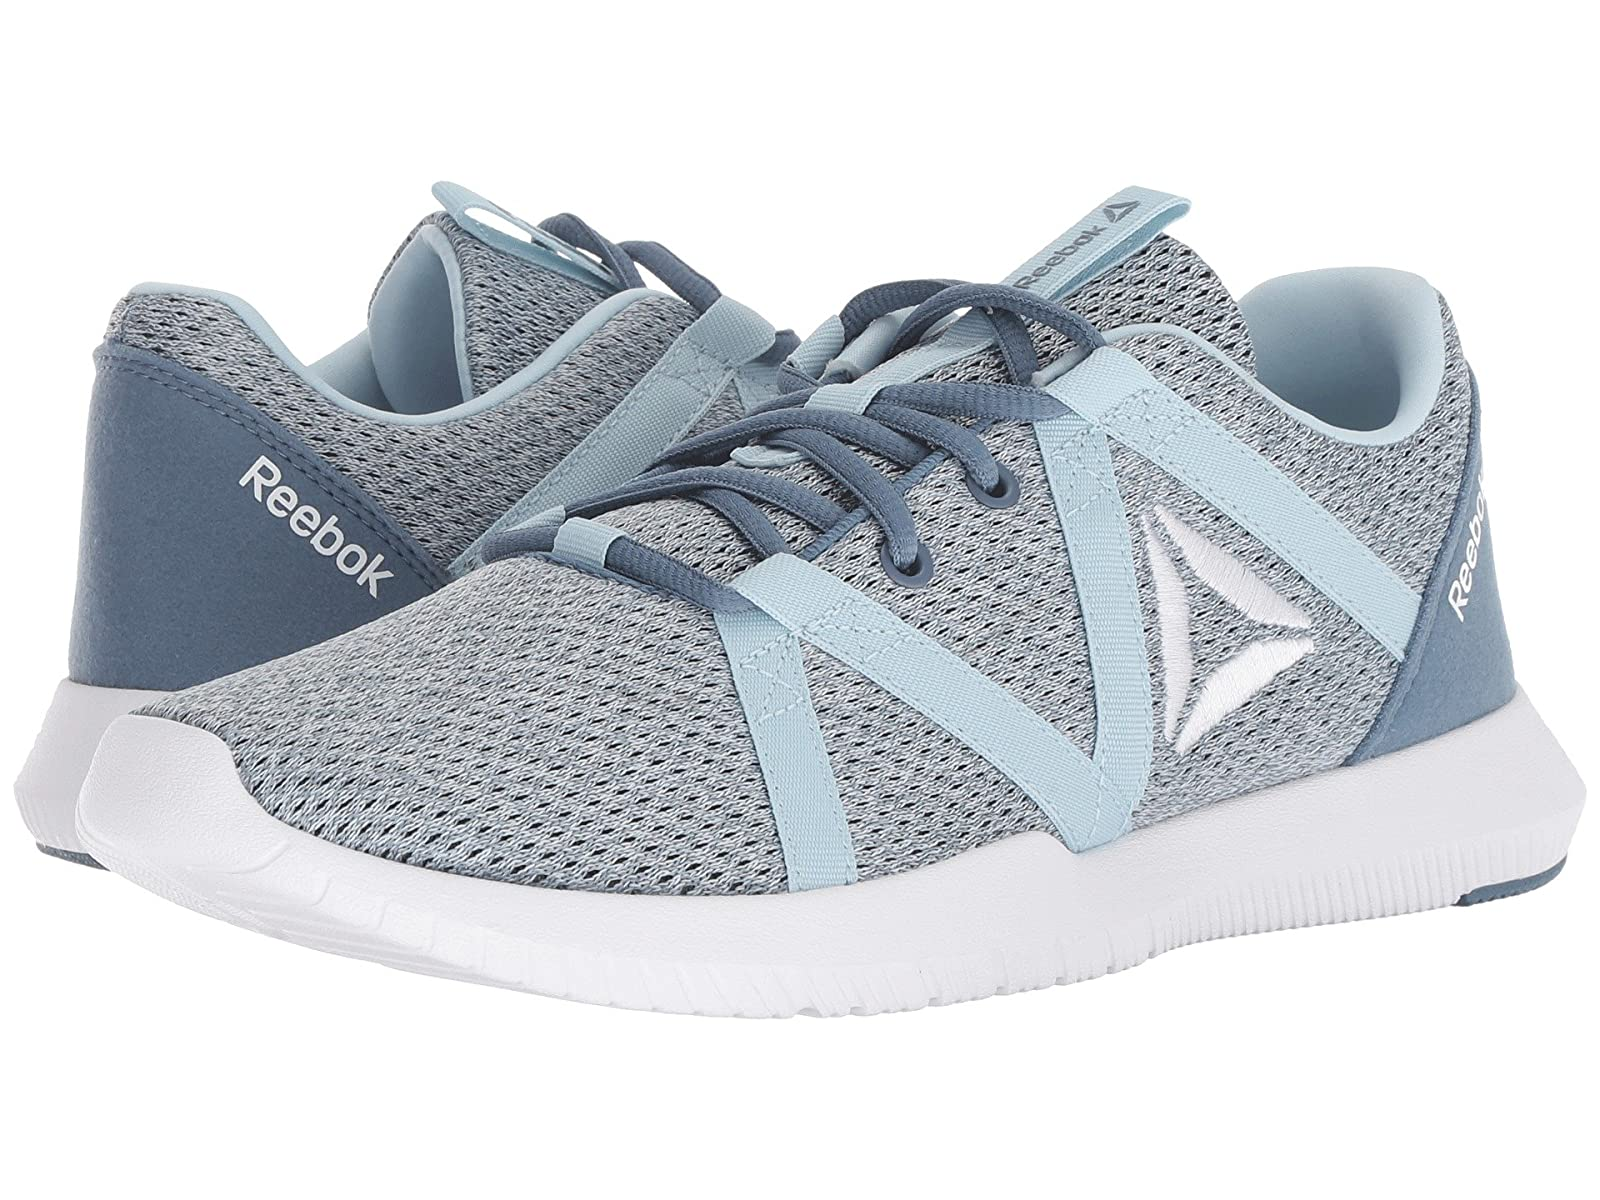 Reebok Reago EssentialCheap and distinctive eye-catching shoes